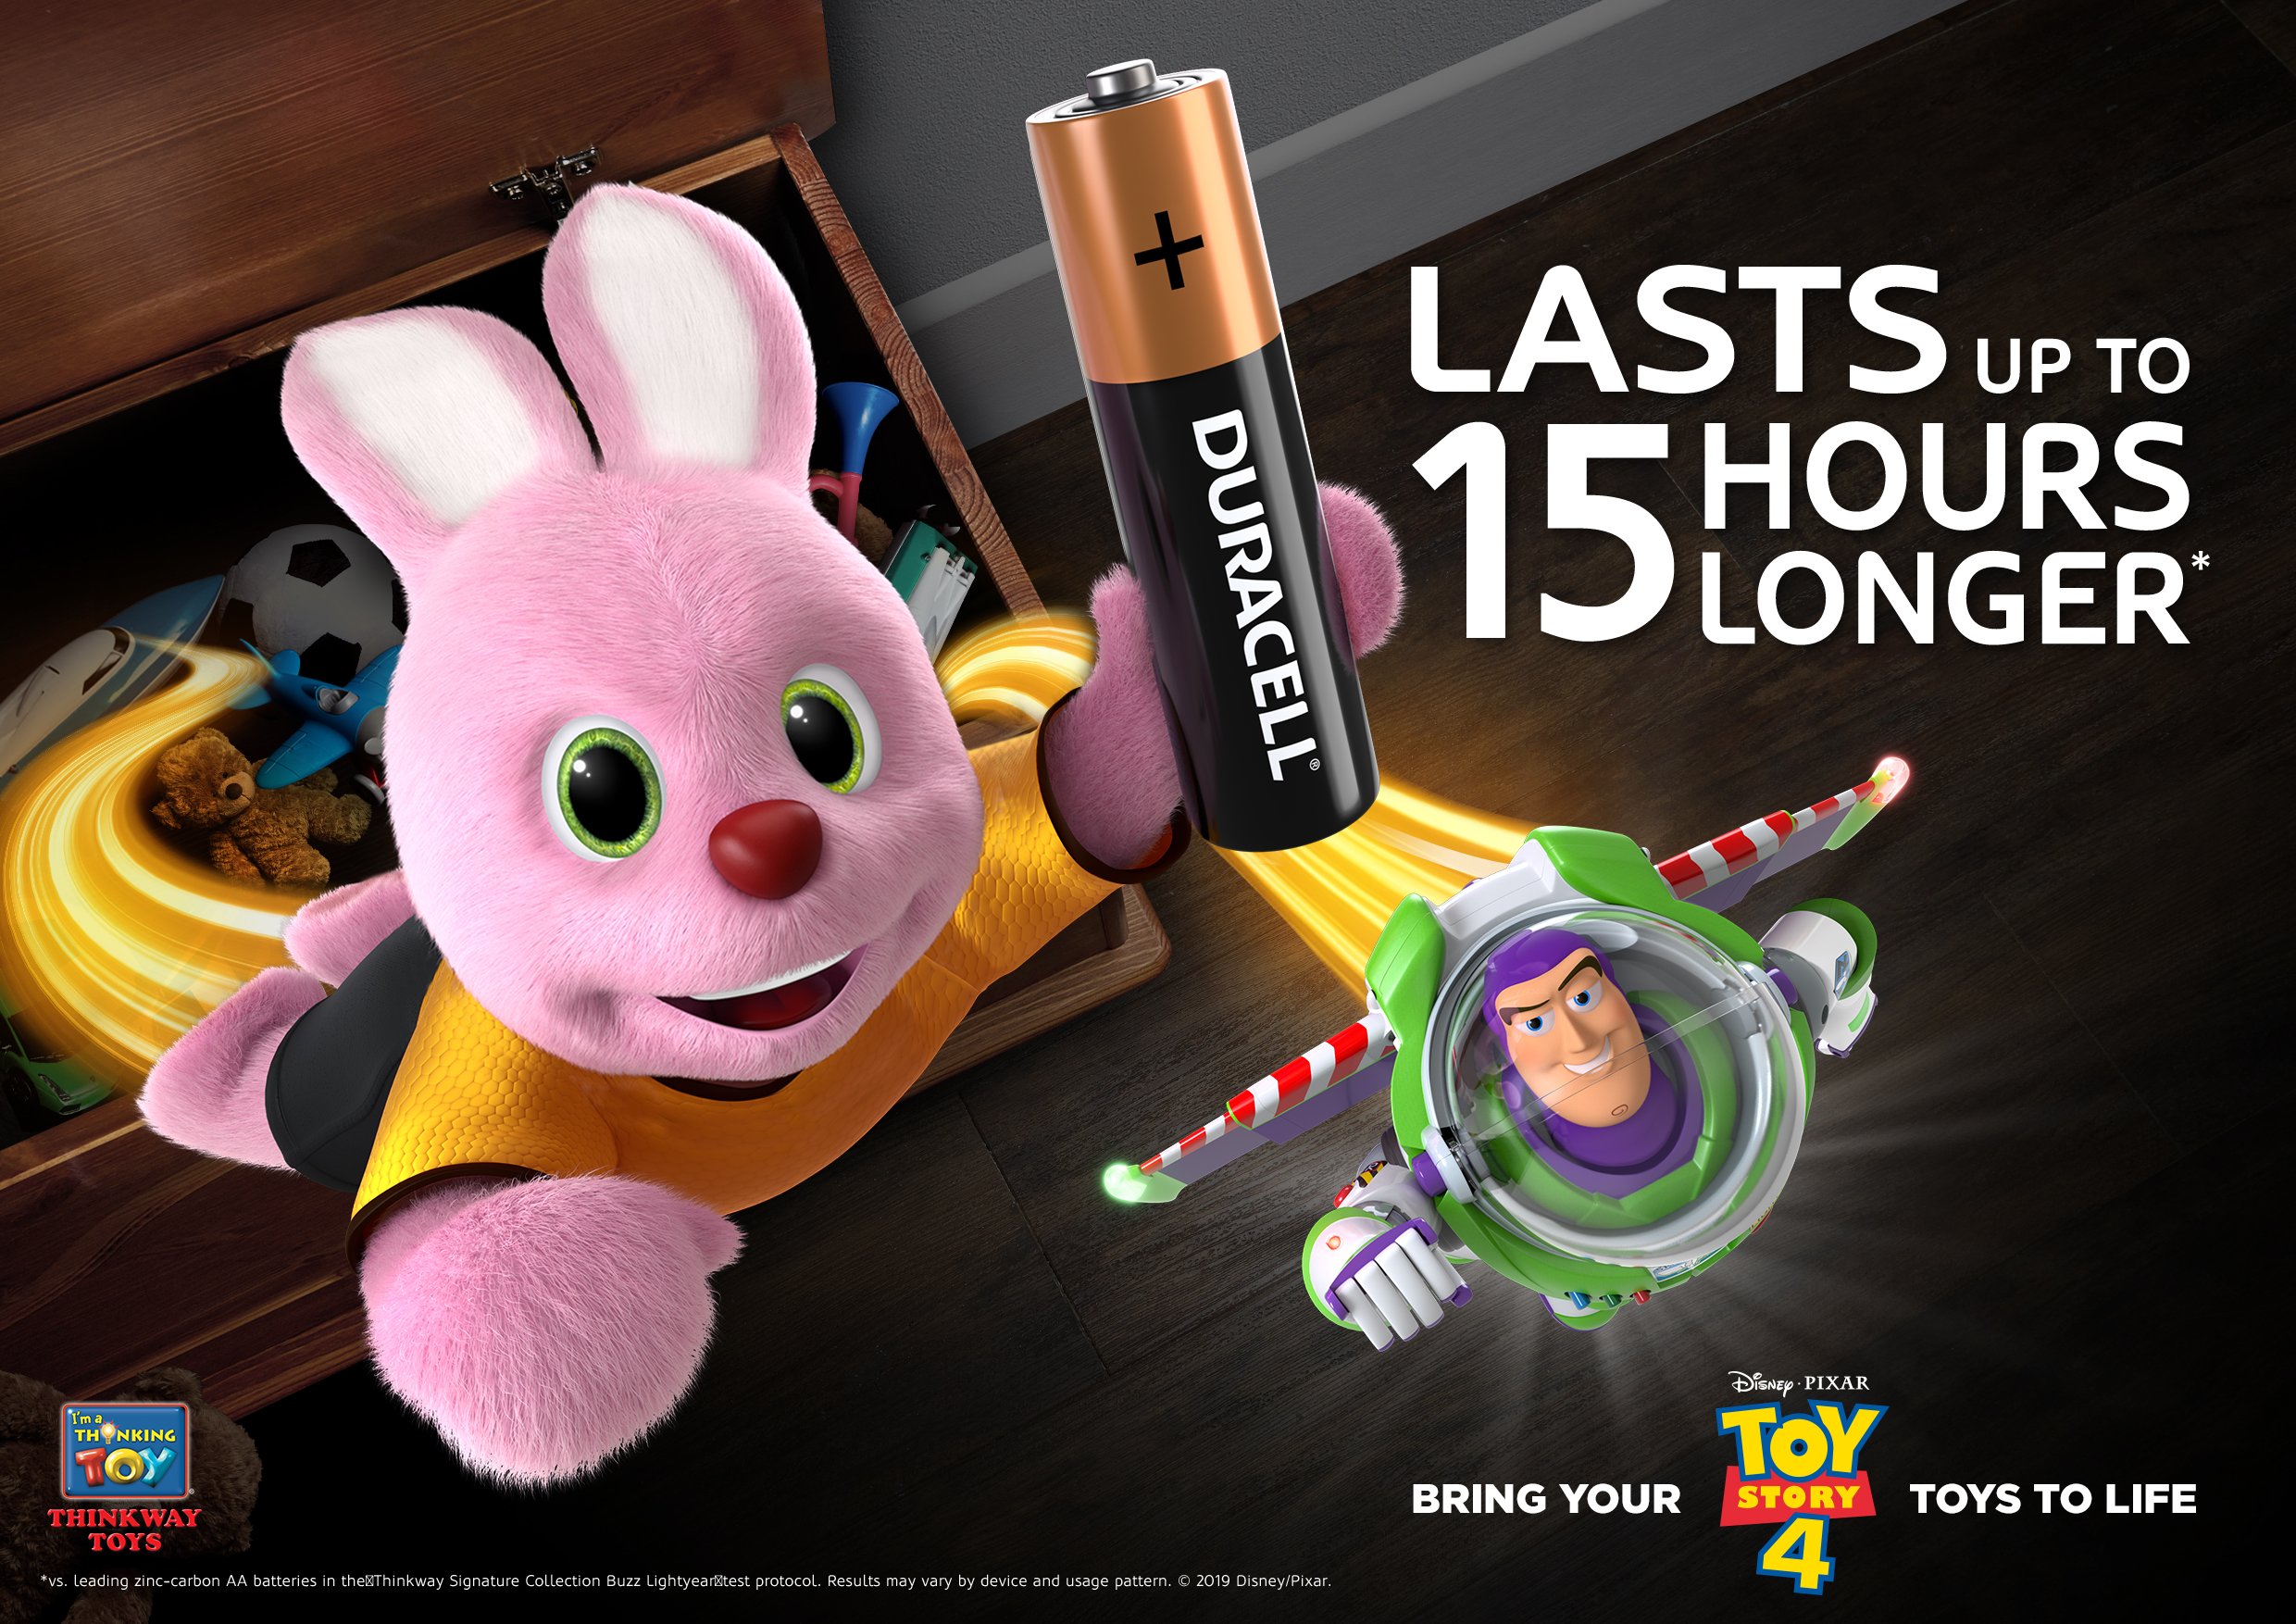 Disney EMEA Collaborates with Eight Major Brands to Celebrate Disney and Pixar's Toy Story 4 Movie Release